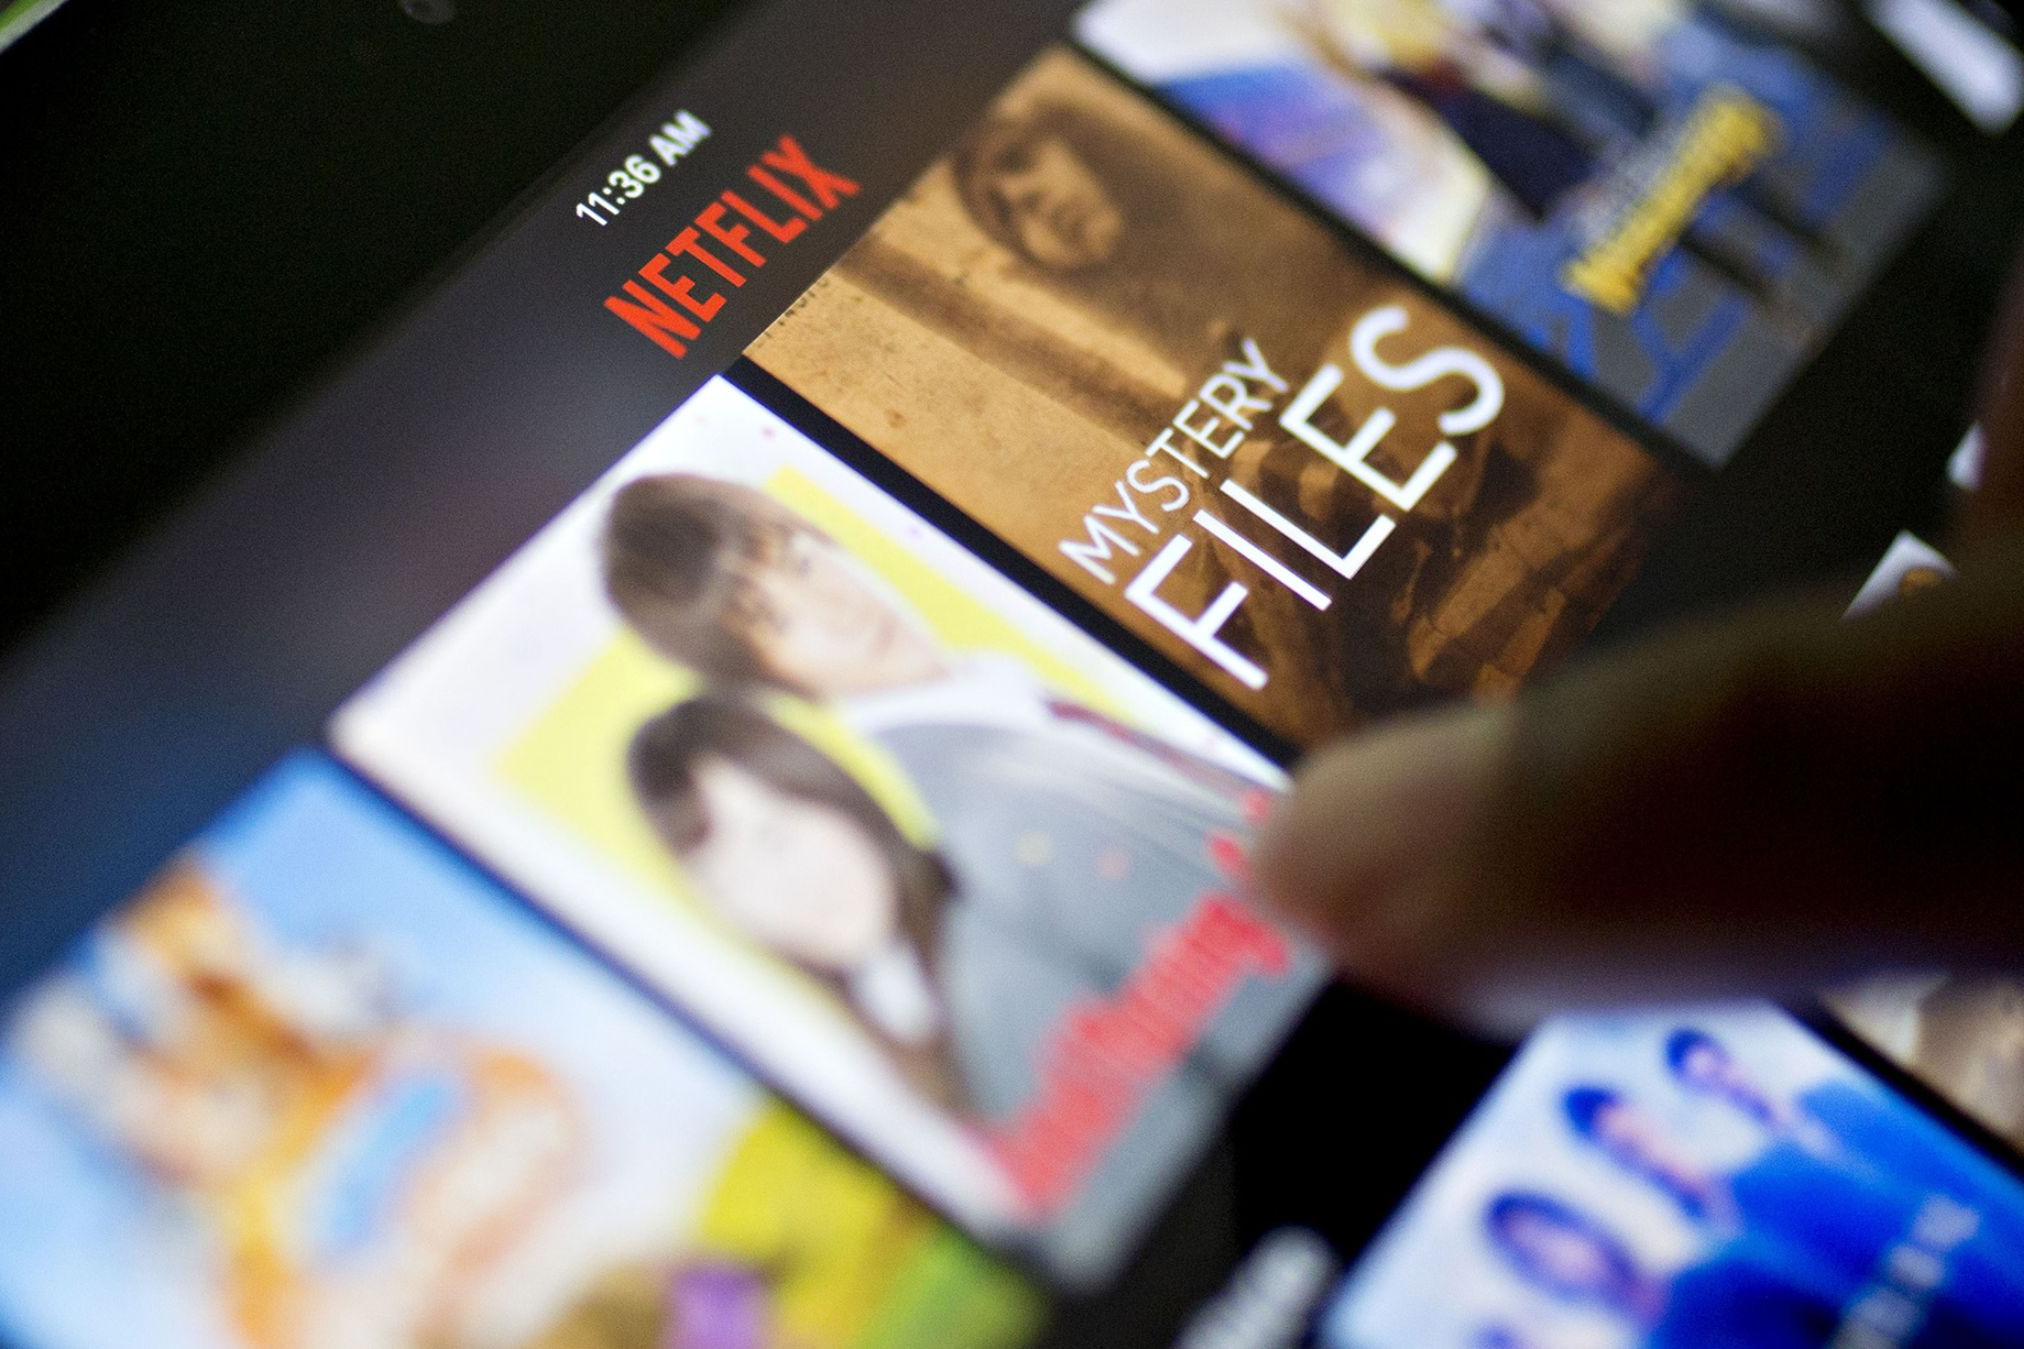 Netflix reveals overseas subscribers and TikTok puts the squeeze on agencies: Tuesday Wake-Up Call